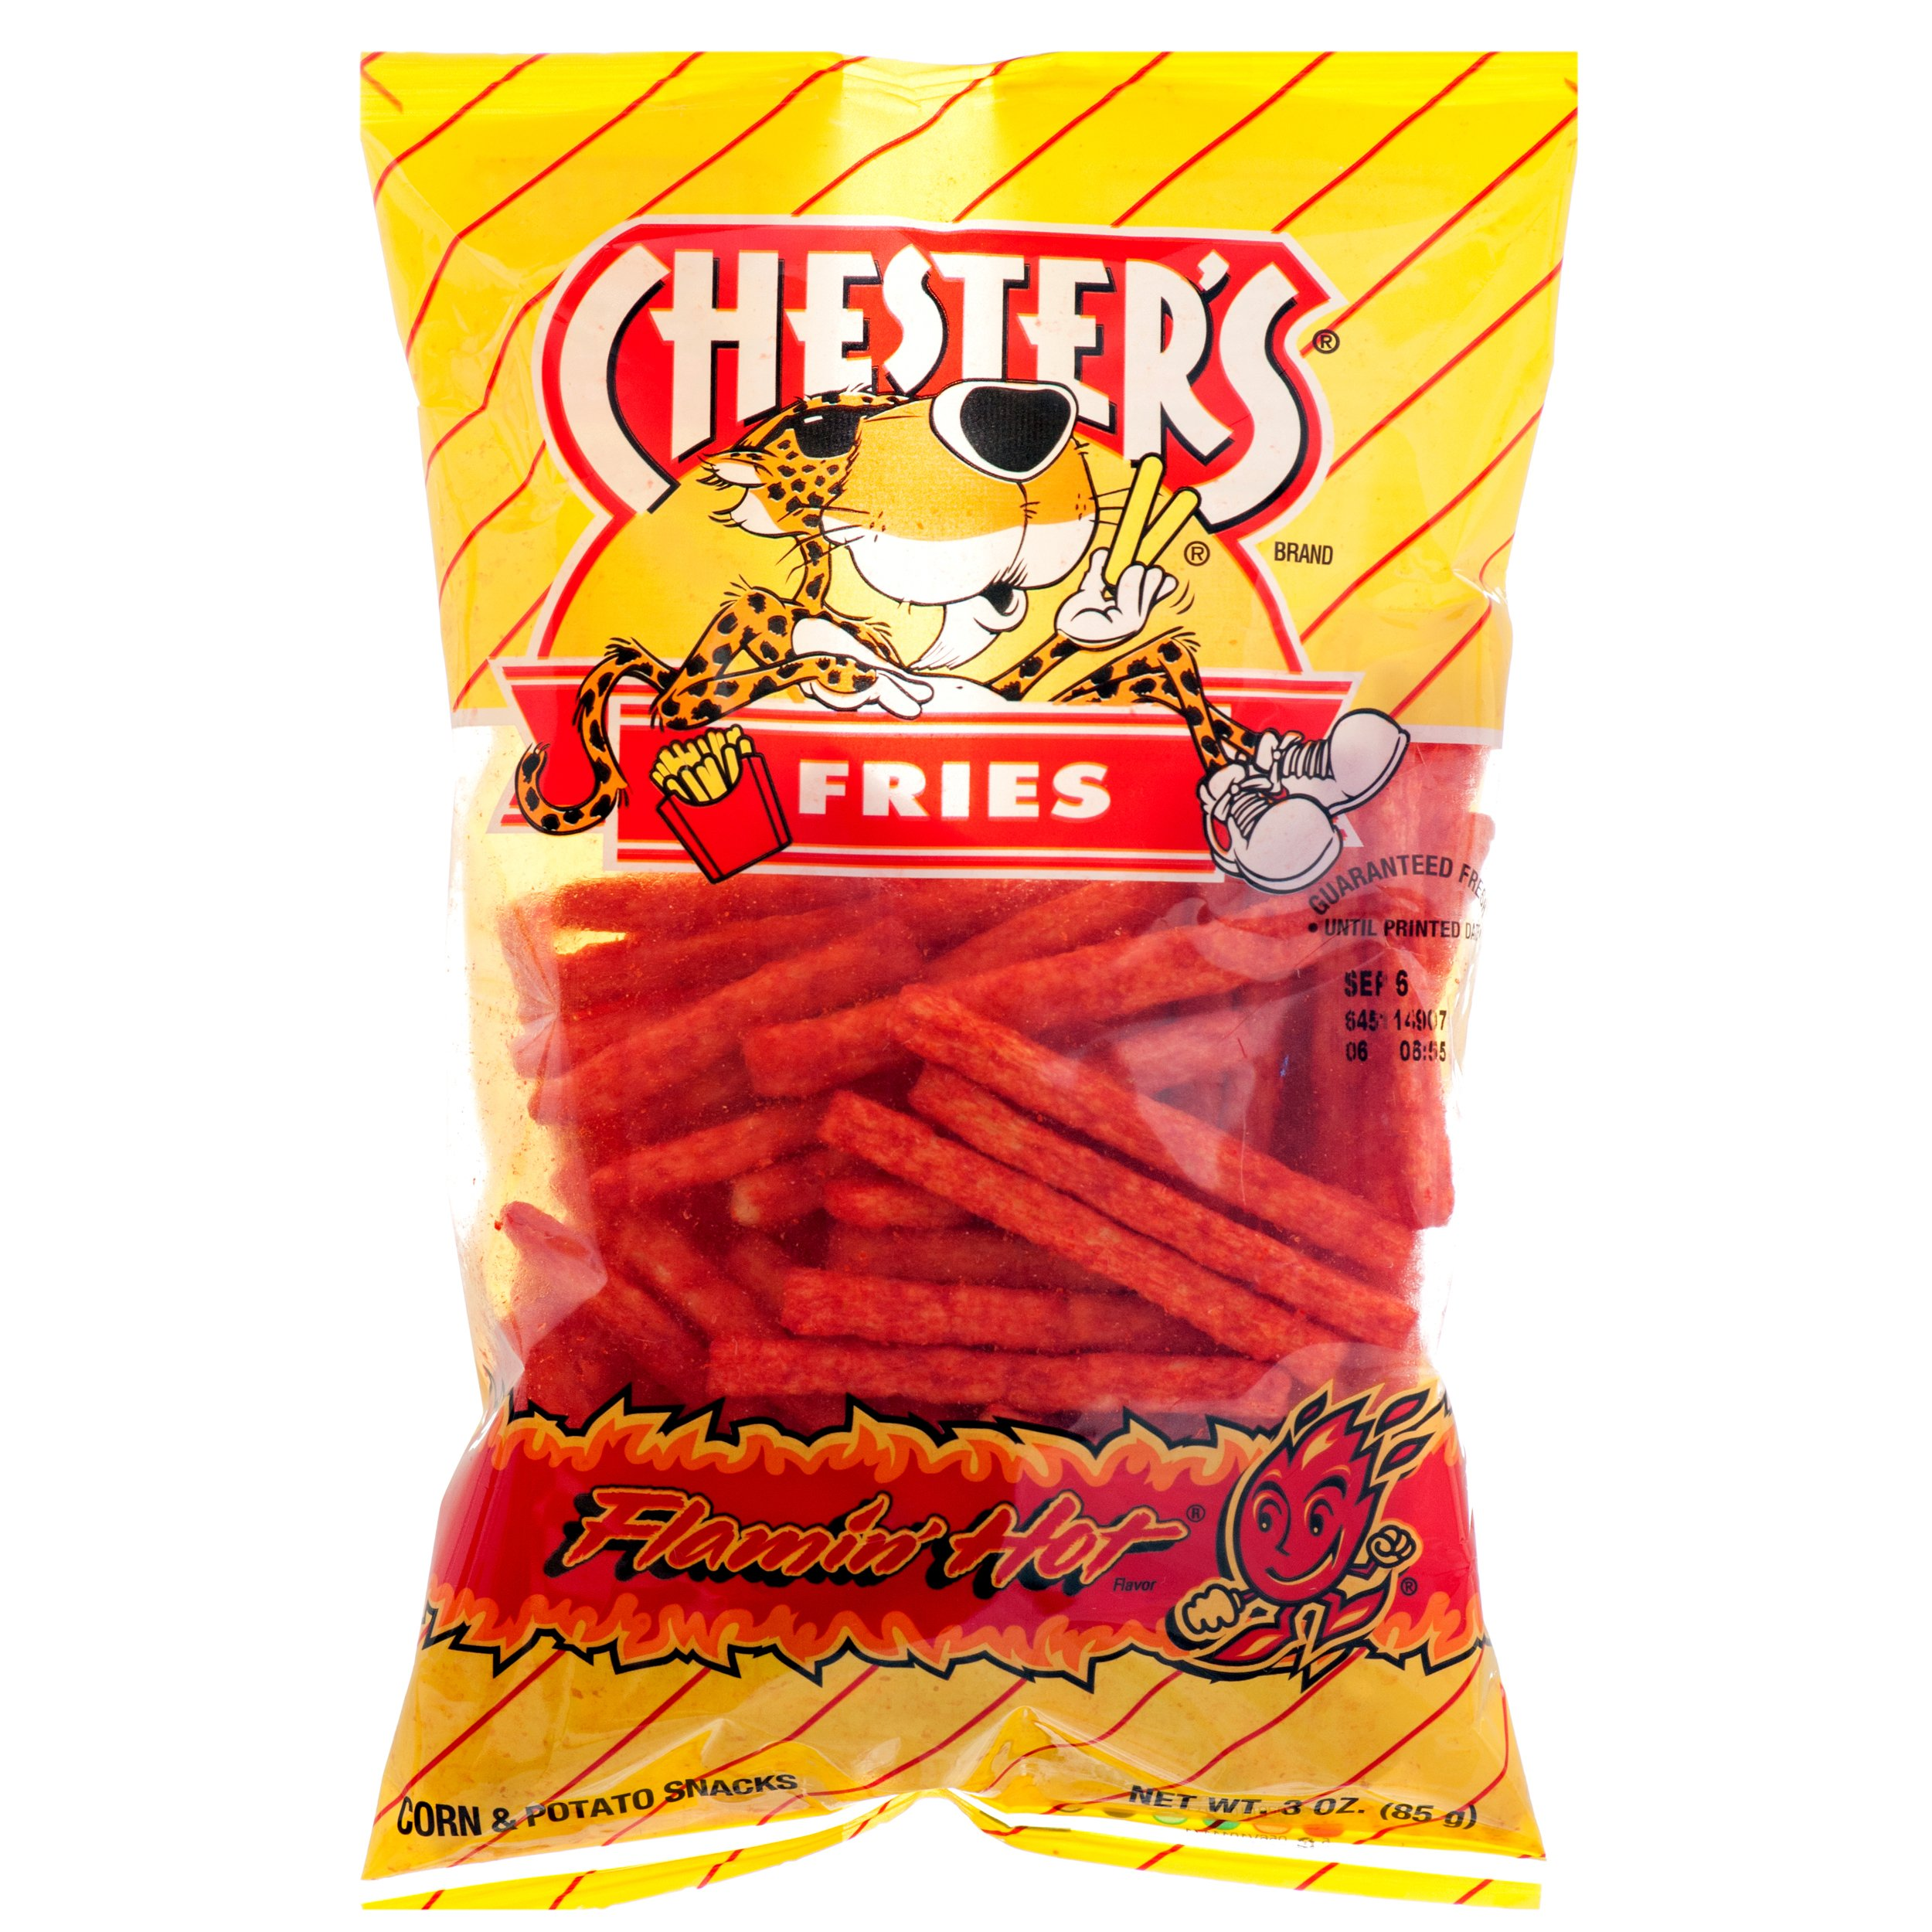 Chester's Fries Flamin' Hot Spicy Flavor - 3 oz Bag - Family Pack - 3 PACK